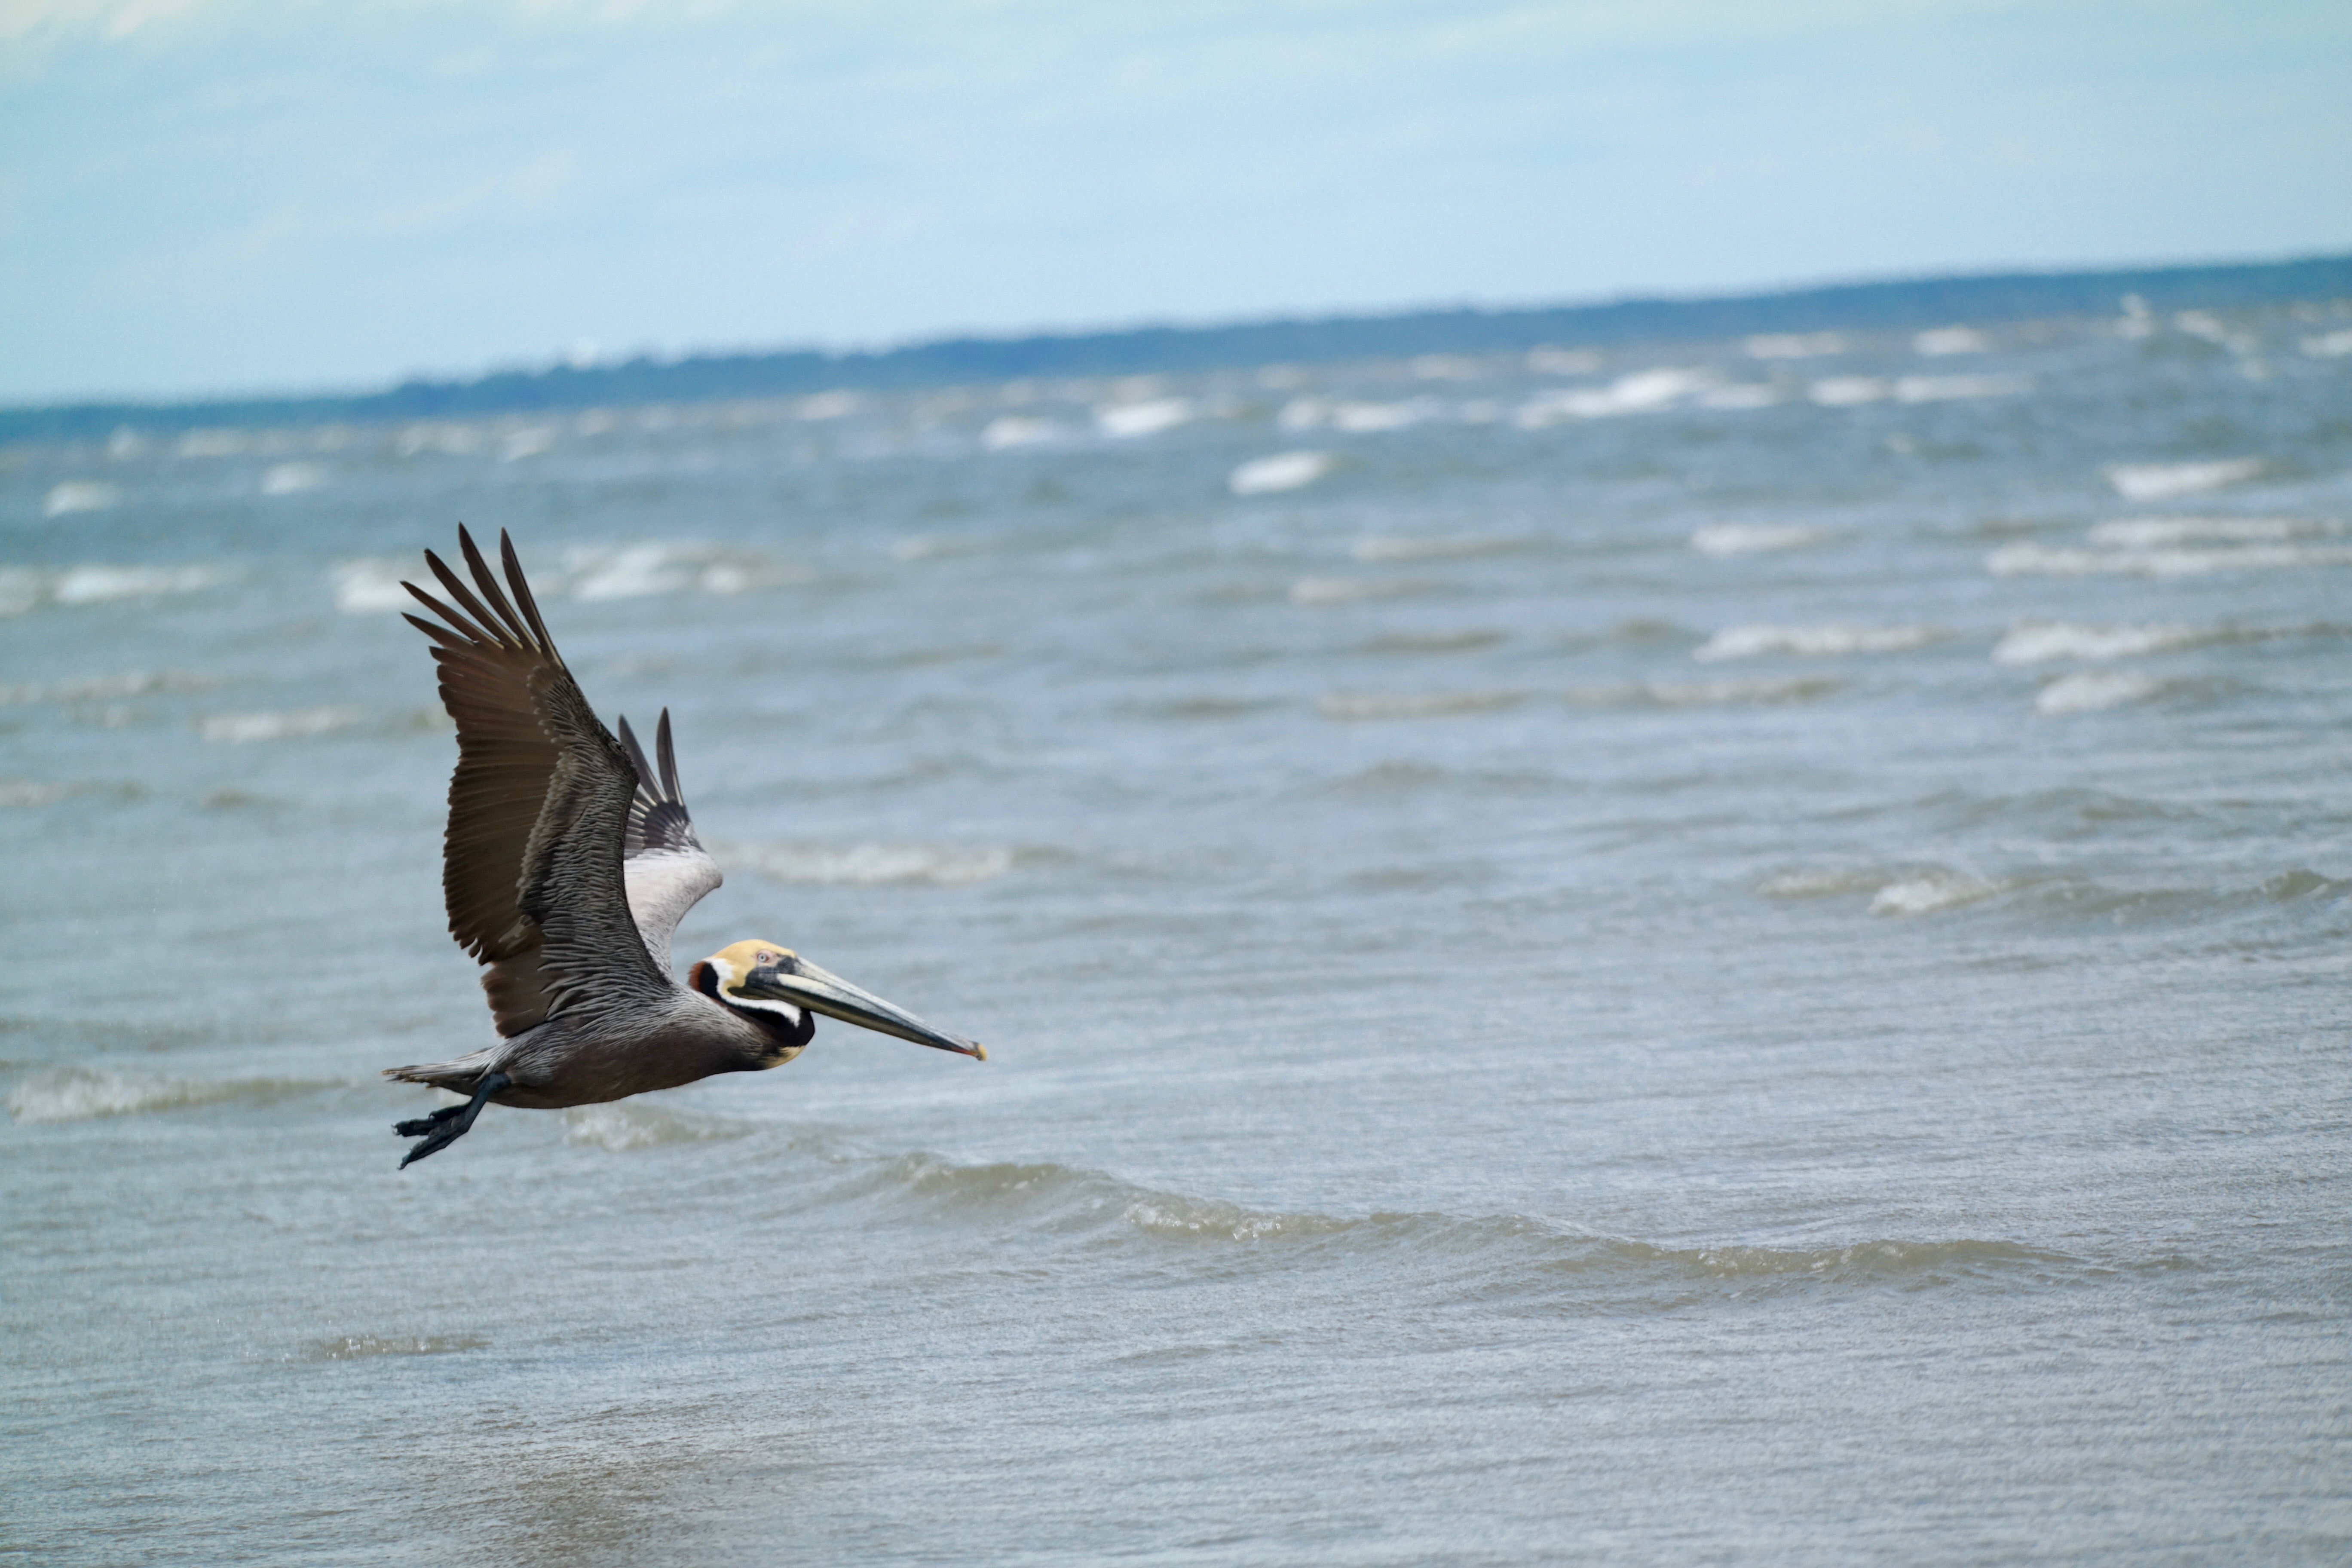 Pelican flying just above the ocean at Hilton Head Island, South Carolina, United States